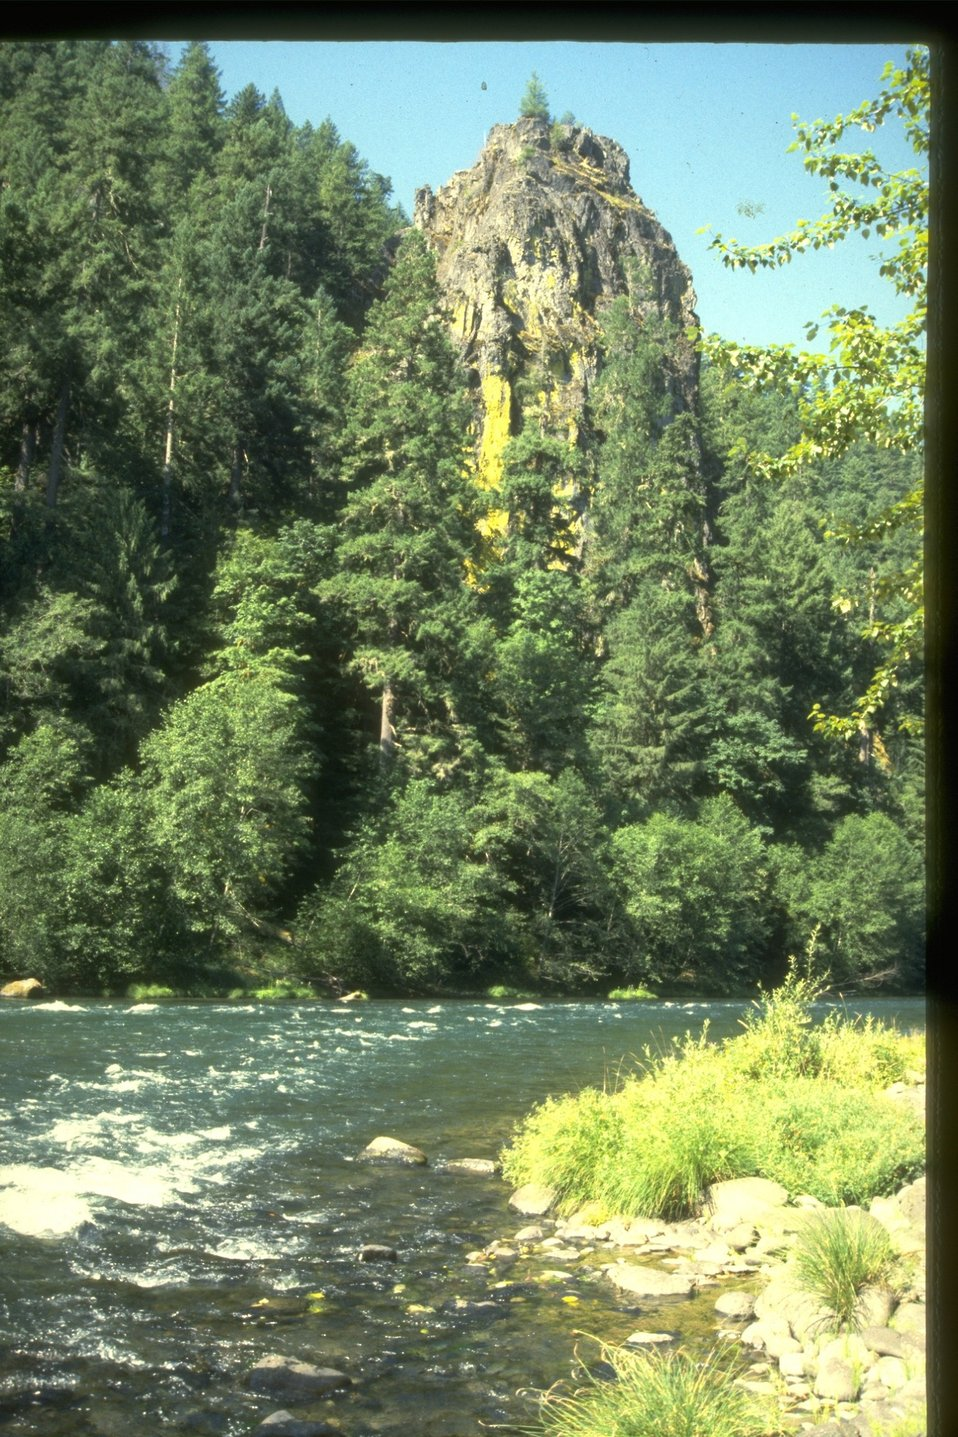 Eagle Rock on the Mckenzie River.  Good view of the riparian area.